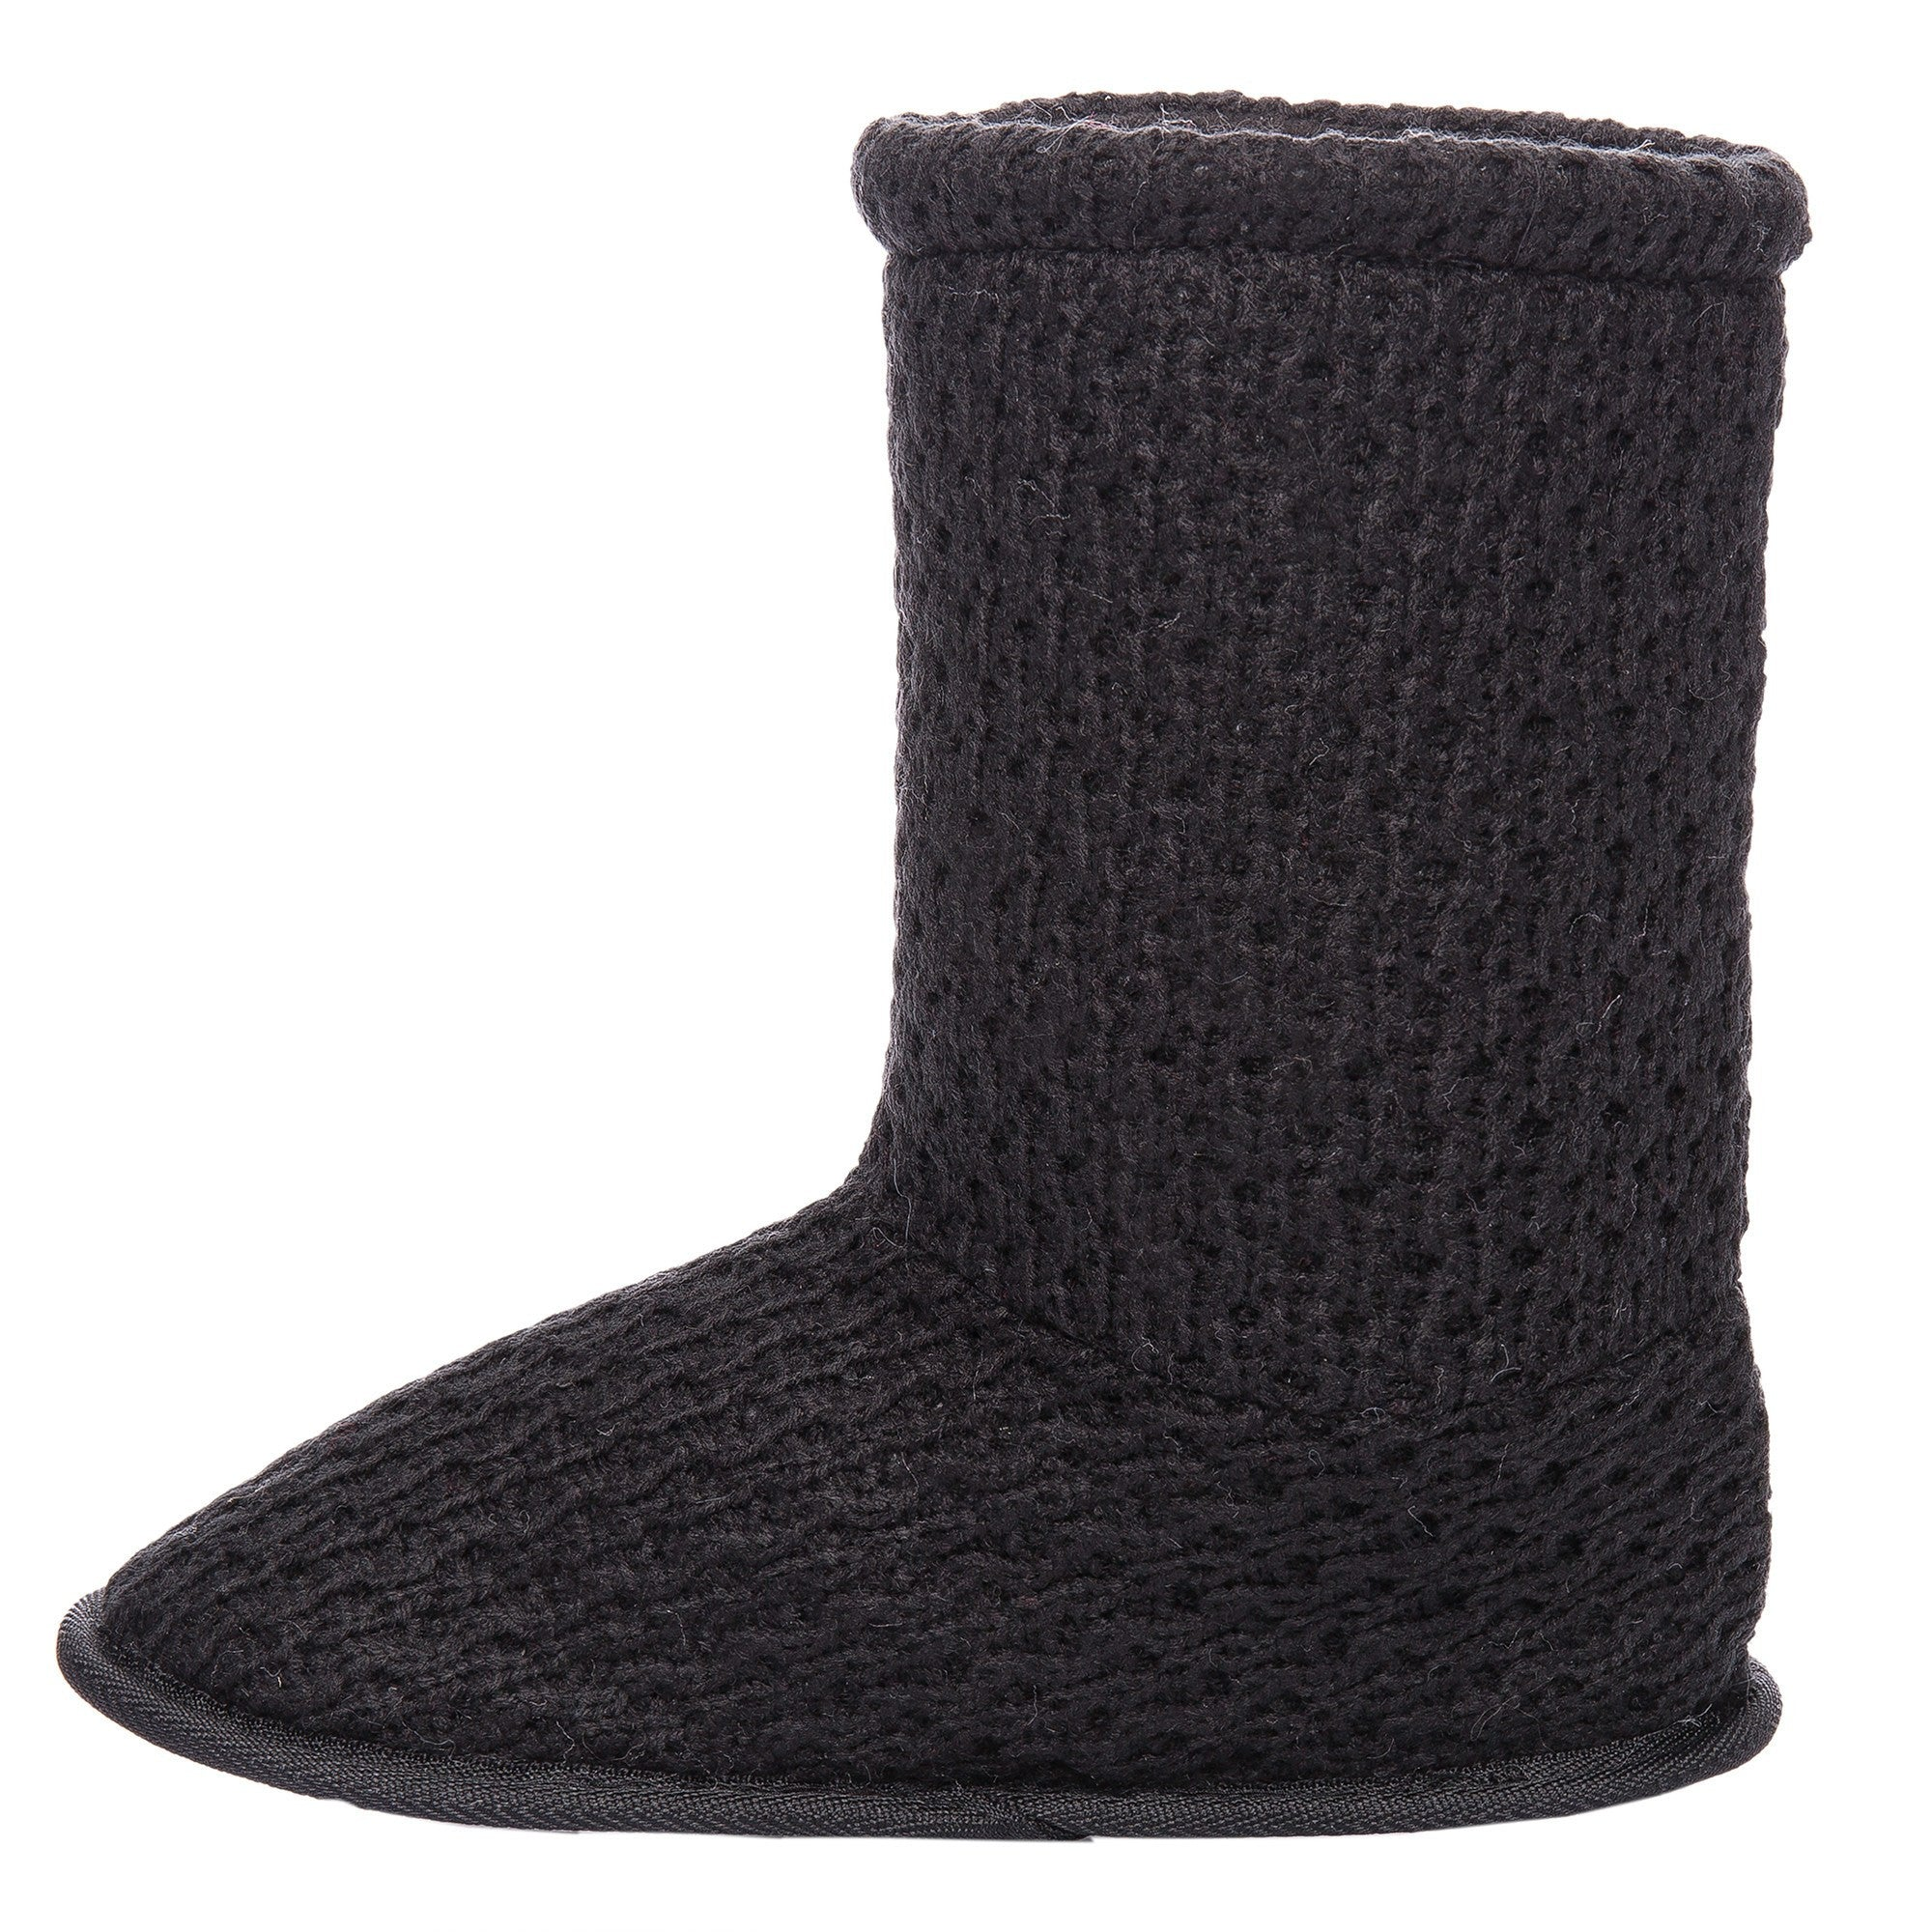 Women's Cozy Crochet Boot Slipper